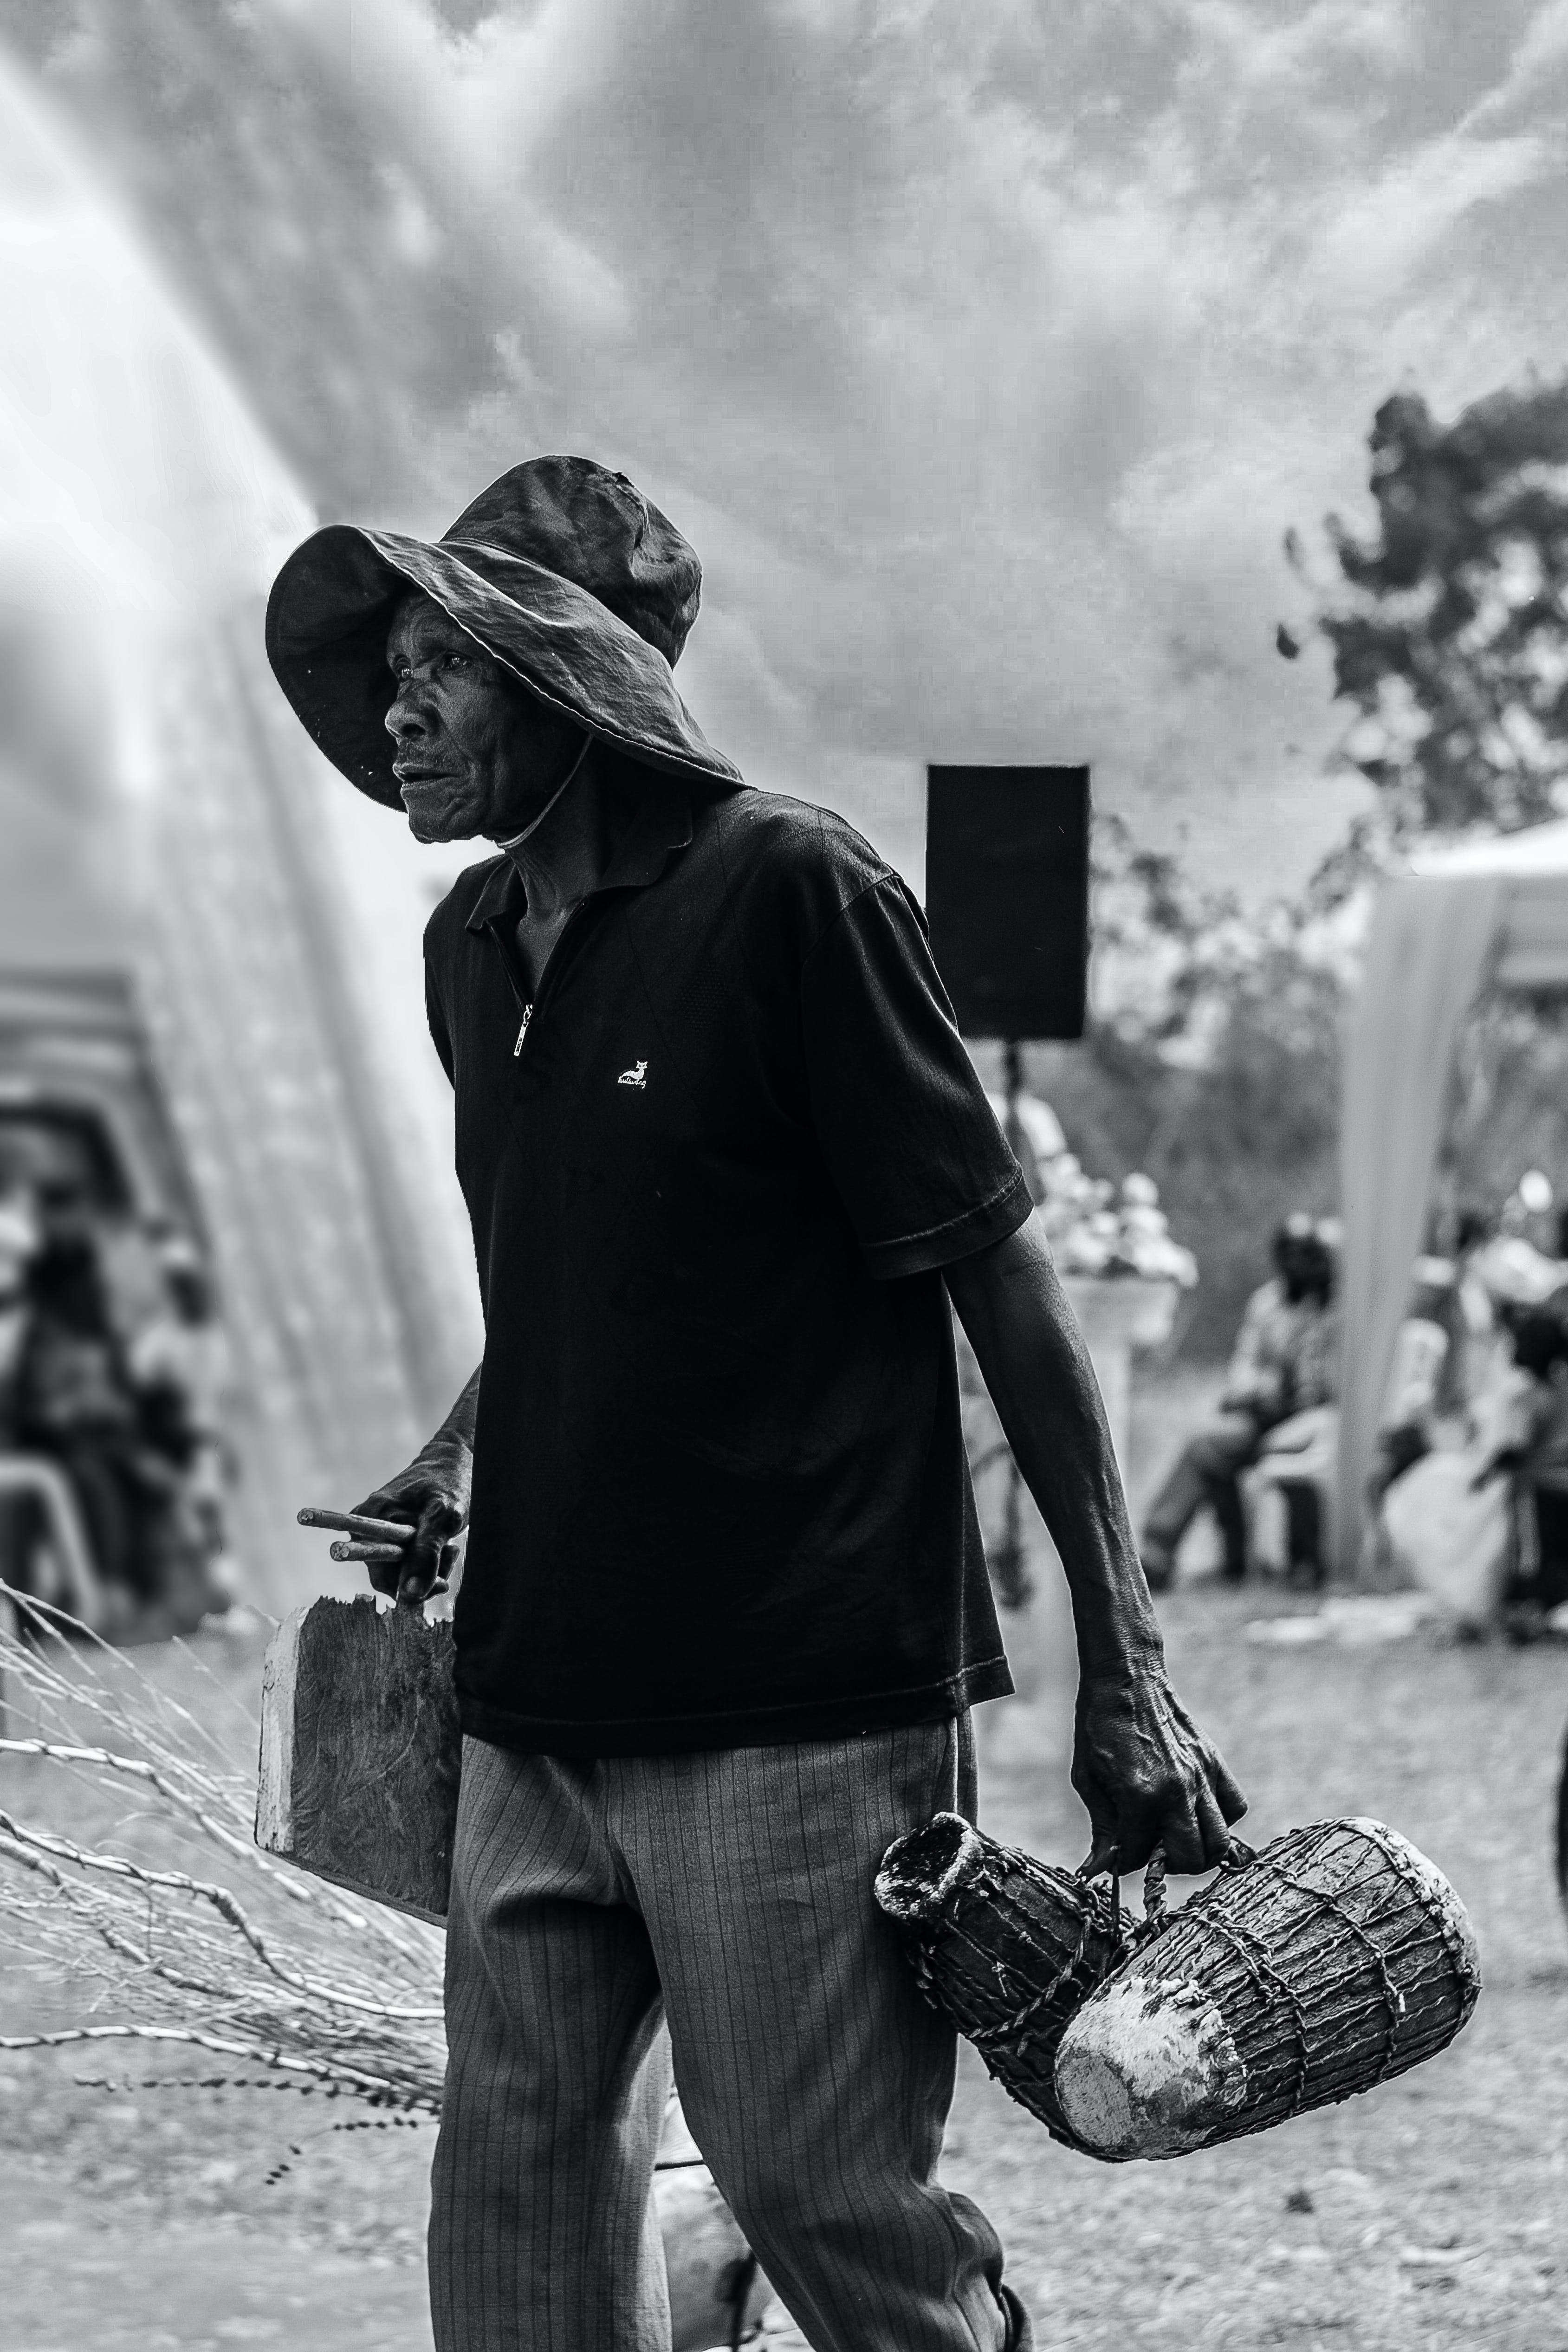 Grayscale Photography of Man Wearing Sun Hat Carrying Baskets